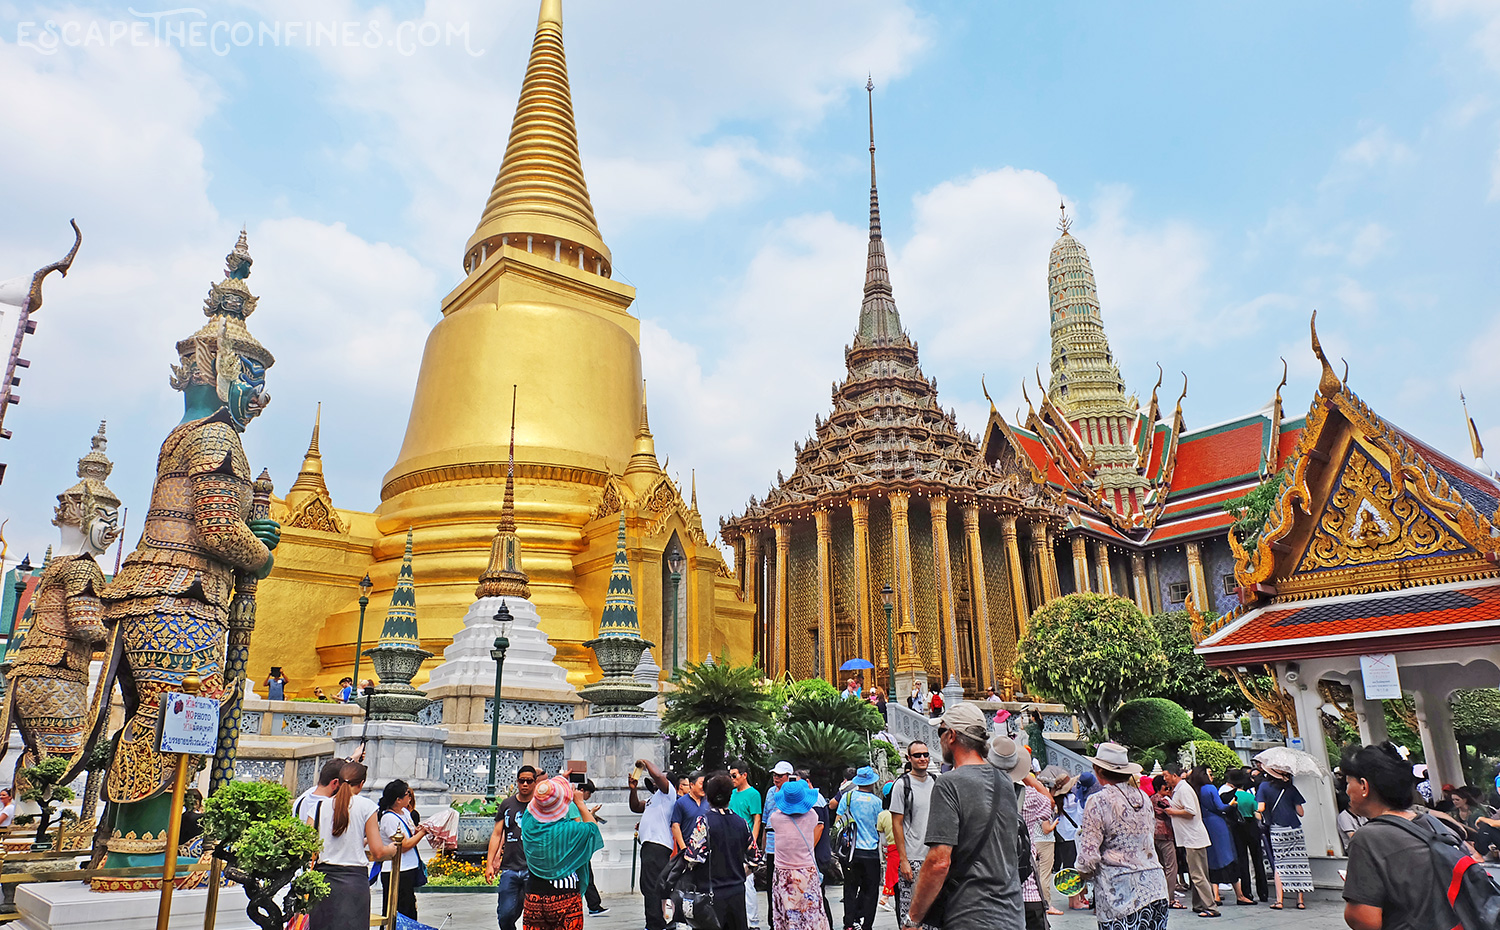 The Grand Palace in Bangkok | Escape The Confines